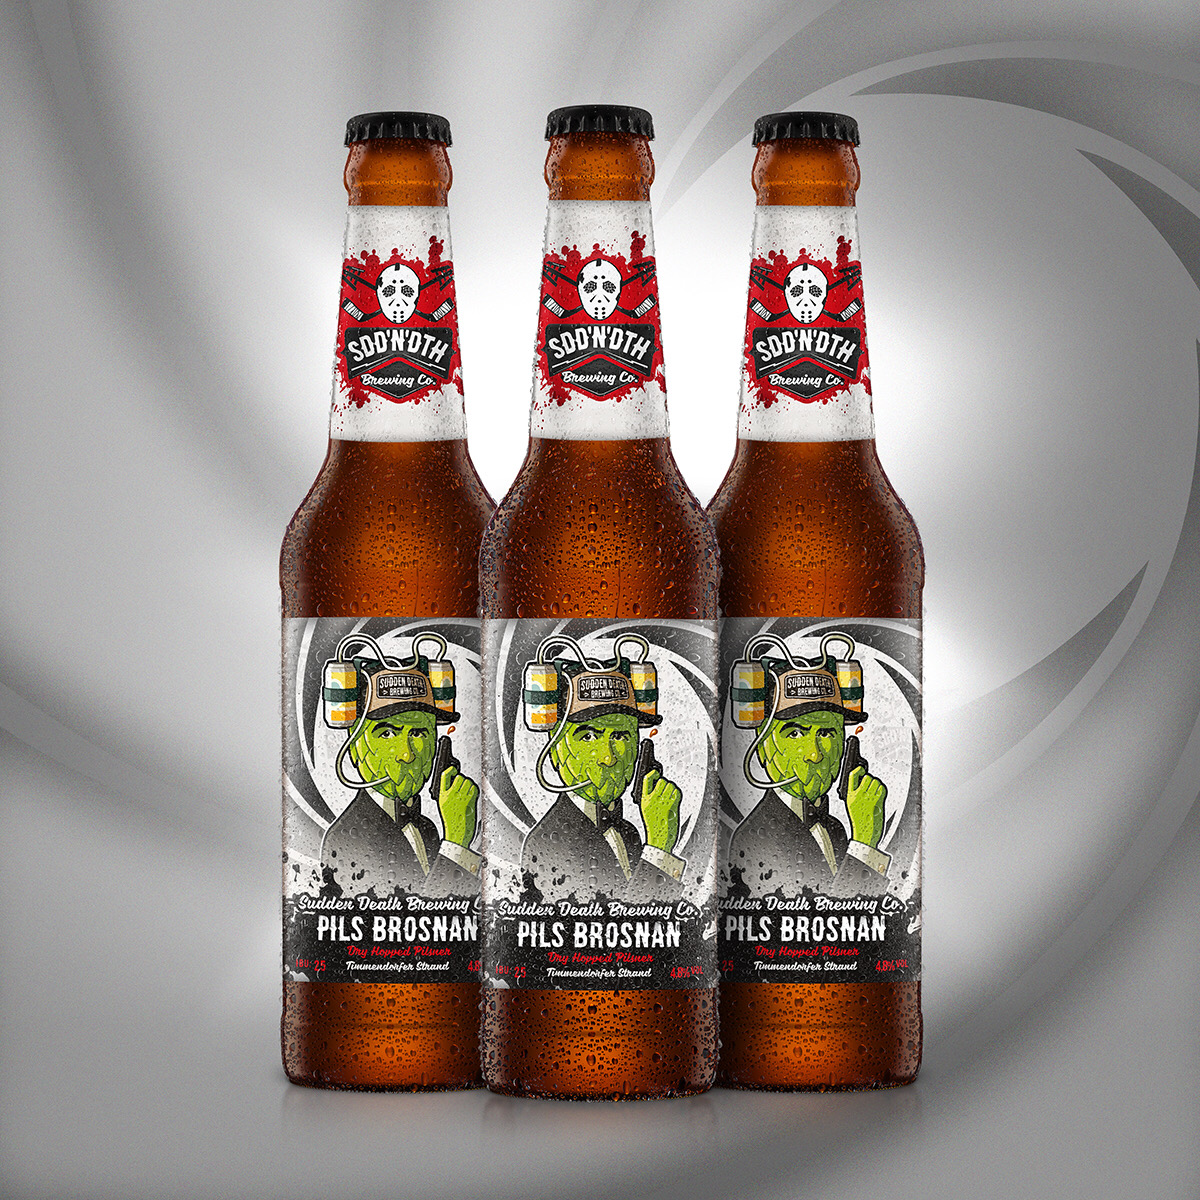 Sudden Death Pils Brosnan Craft Beer